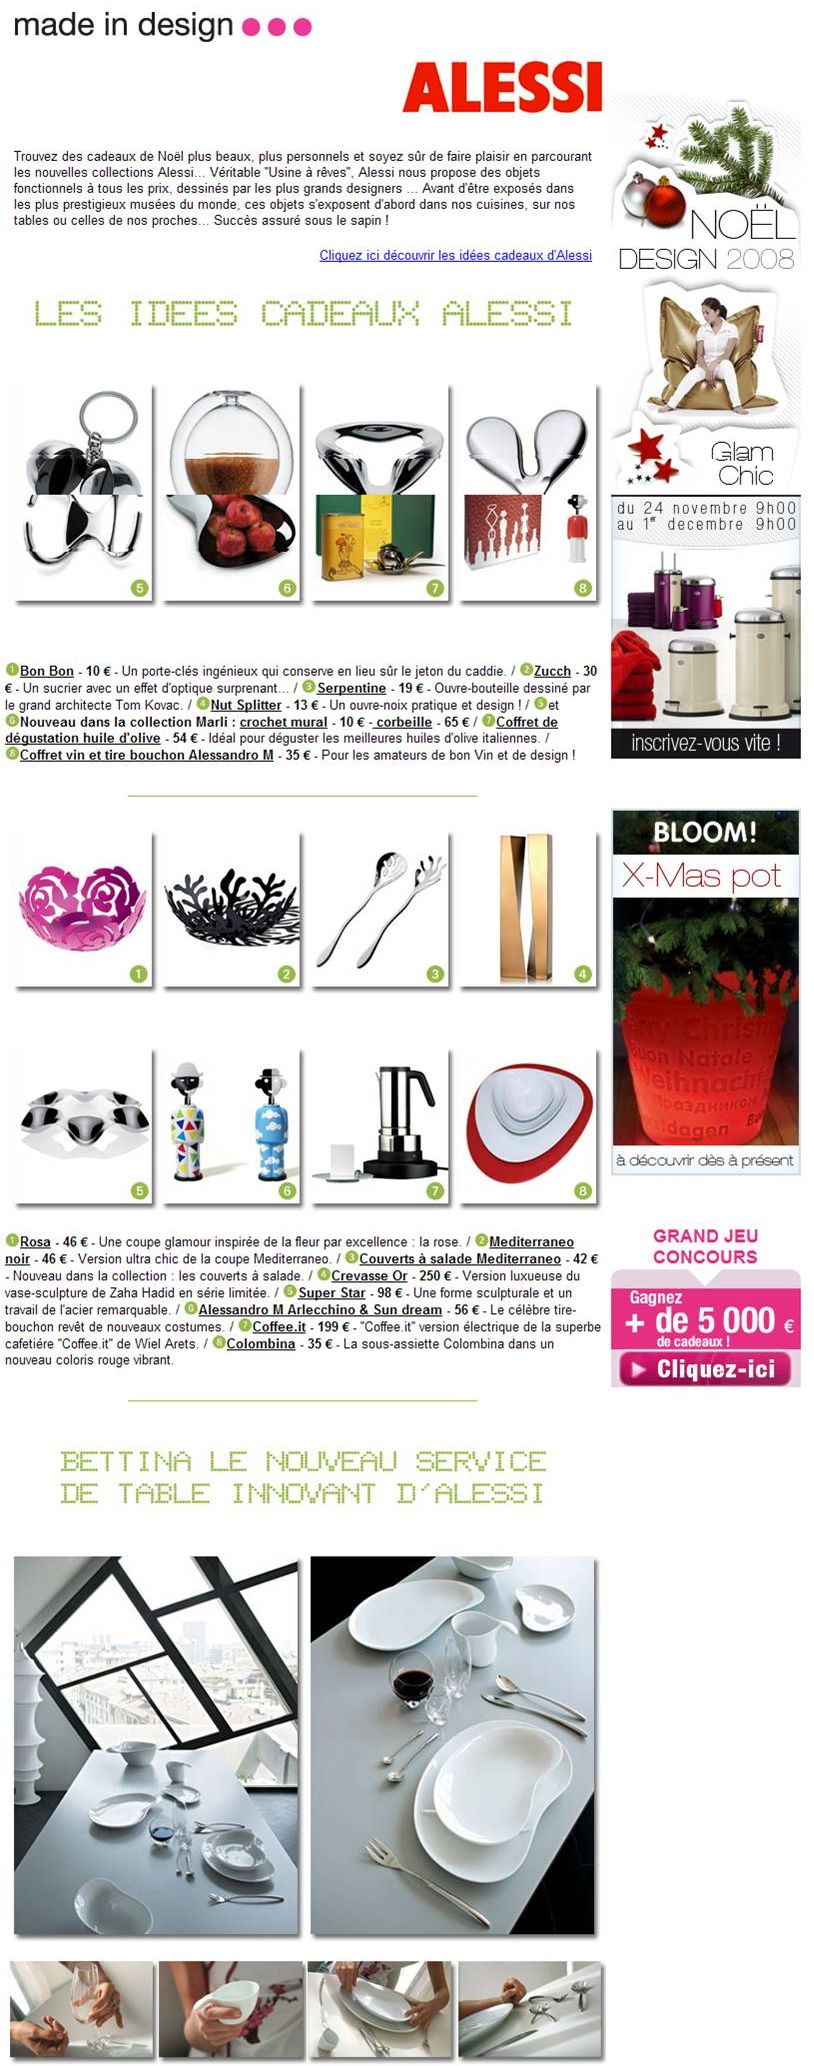 Emails publicitaires Noël 2008 : les choix de la rédaction Marketing-Professionnel.fr. Sources : LeSiteMarketing